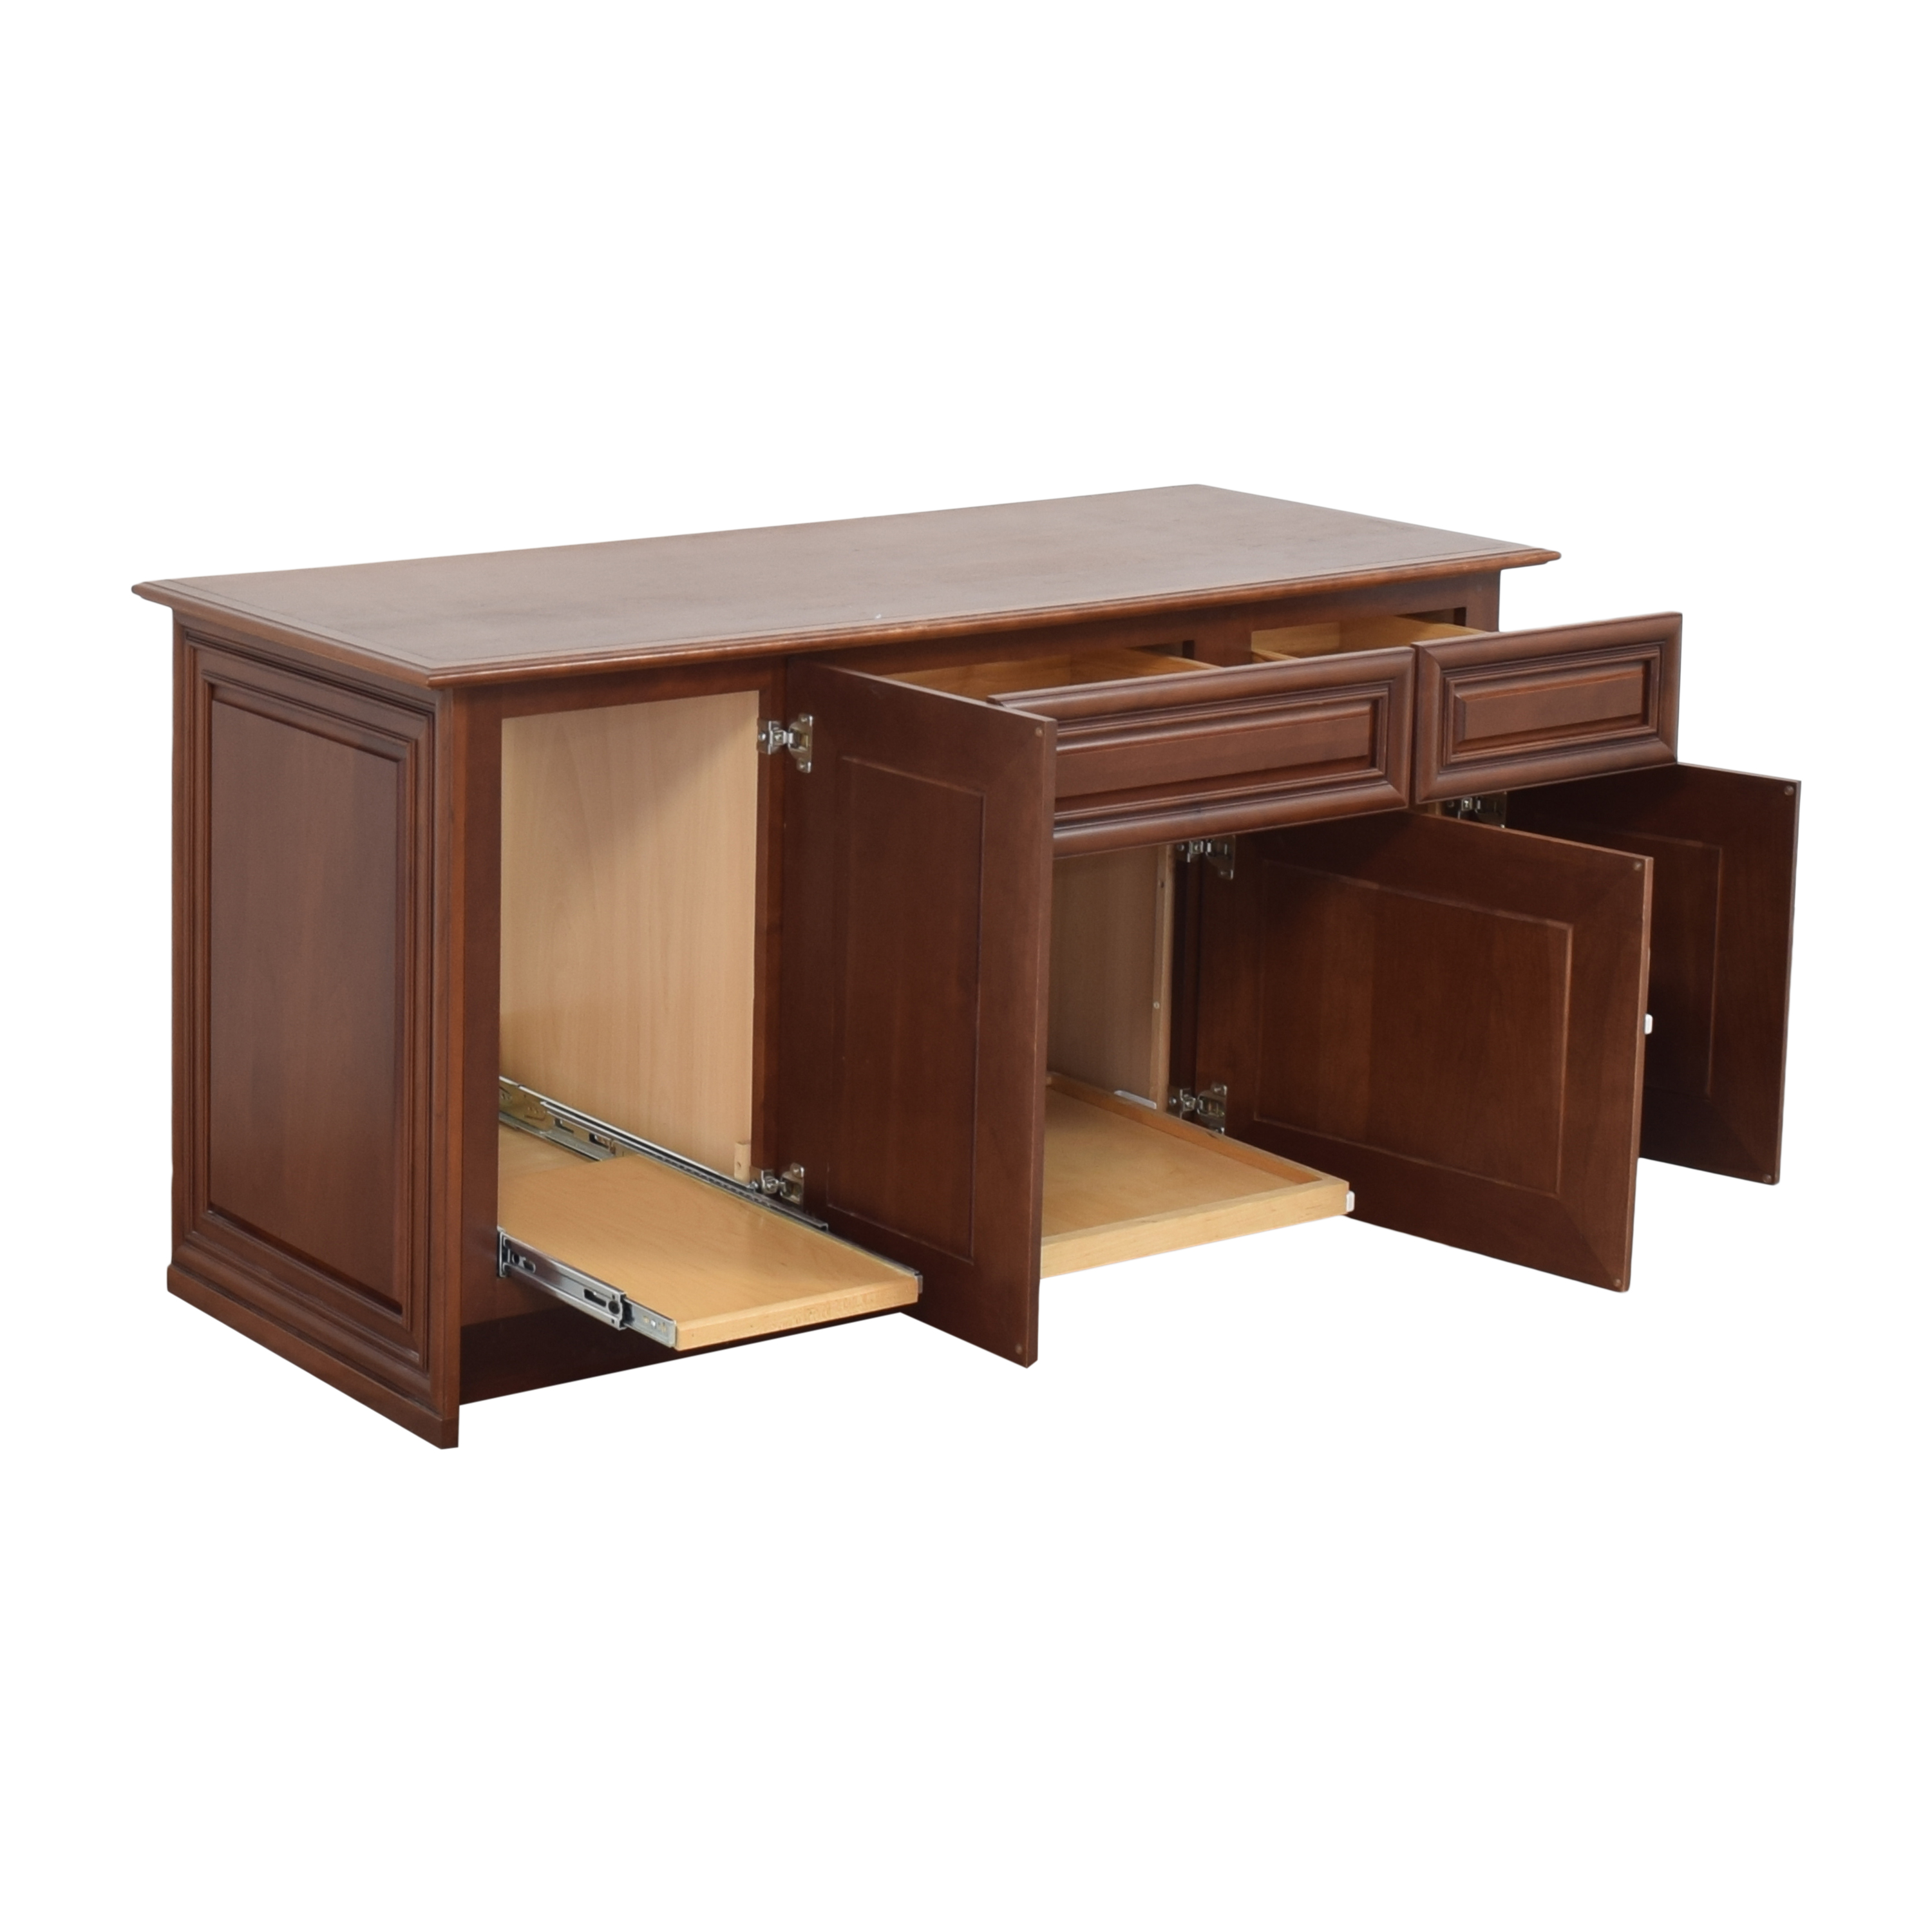 shop Yorktowne Cabinetry Office Credenza Yorktowne Cabinetry Cabinets & Sideboards